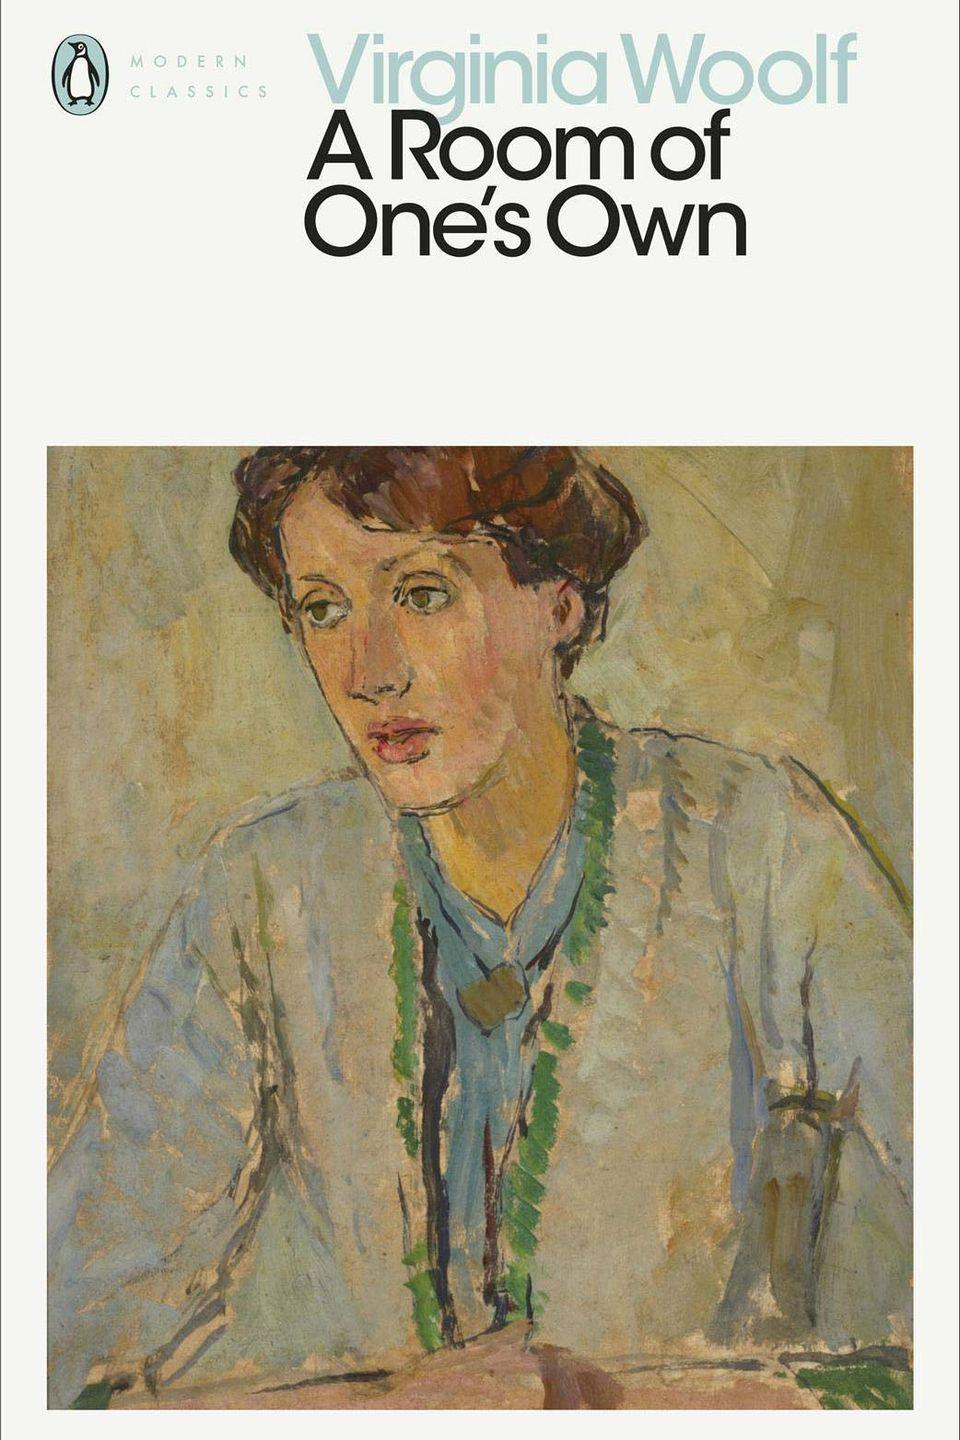 """<p><a class=""""link rapid-noclick-resp"""" href=""""https://www.amazon.co.uk/Room-Ones-Penguin-Modern-Classics/dp/0241436281/ref=asc_df_0241436281/?tag=hearstuk-yahoo-21&linkCode=df0&hvadid=463167315269&hvnetw=g&hvrand=11247952436201746240&hvdev=c&hvlocphy=9073583&hvtargid=pla-955344053492&psc=1&psc=1&th=1&ascsubtag=%5Bartid%7C1927.g.35935432%5Bsrc%7Cyahoo-uk"""" rel=""""nofollow noopener"""" target=""""_blank"""" data-ylk=""""slk:SHOP NOW"""">SHOP NOW</a></p><p>""""England is under the rule of a patriarchy,"""" writes Virginia Woolf in her seminal book, A Room Of One's Own. The author, curiously, was never keen on the term feminist, but in this short novel, she passionately and articulately writes about female exclusion – from independence, income and education. Her argument that the key to female creative liberation is a room, along with independence, is as valid now as it was then. In a world dominated by men, Woolf asserted her presence and creativity, paving the way for many to follow in her footsteps. </p>"""